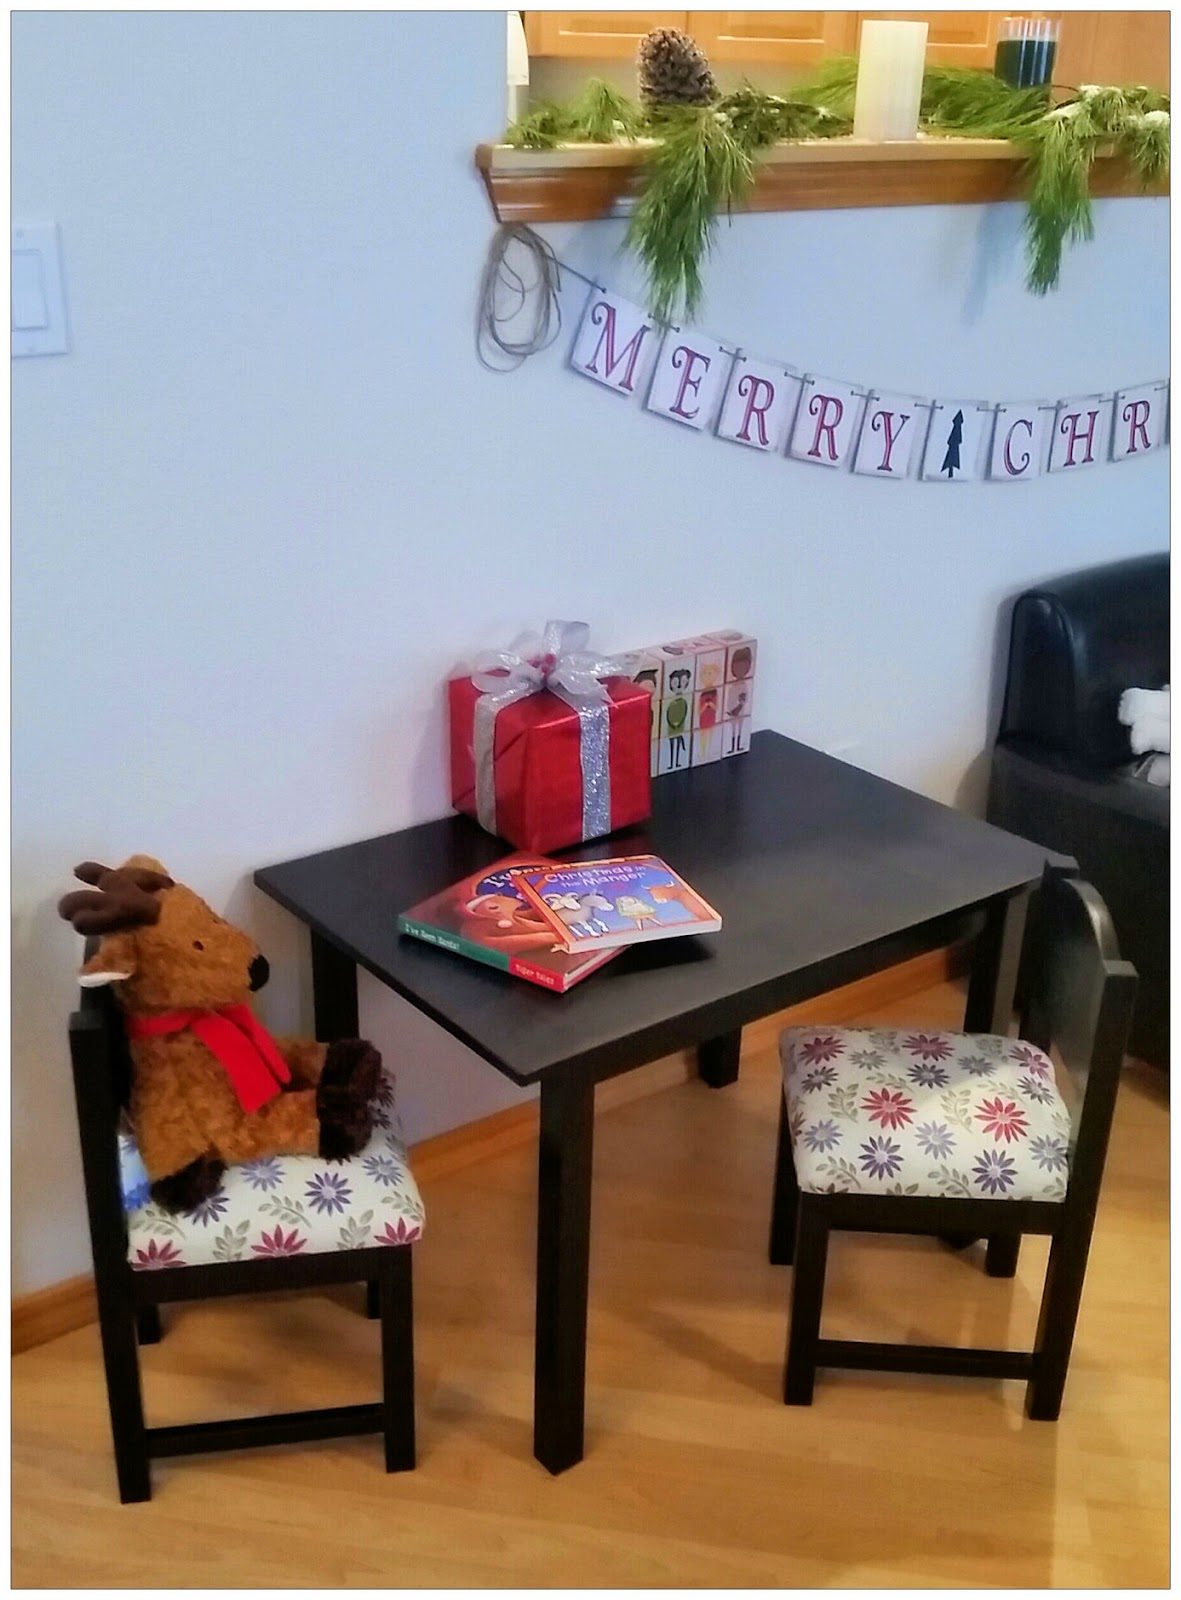 I purchased these table and chairs at Ikea for Baby J. I wanted to get heavy duty chairs that we would be able to sit on with her. & IKEA Kids Table and Chairs DIY u2013 The Heart Comes Home